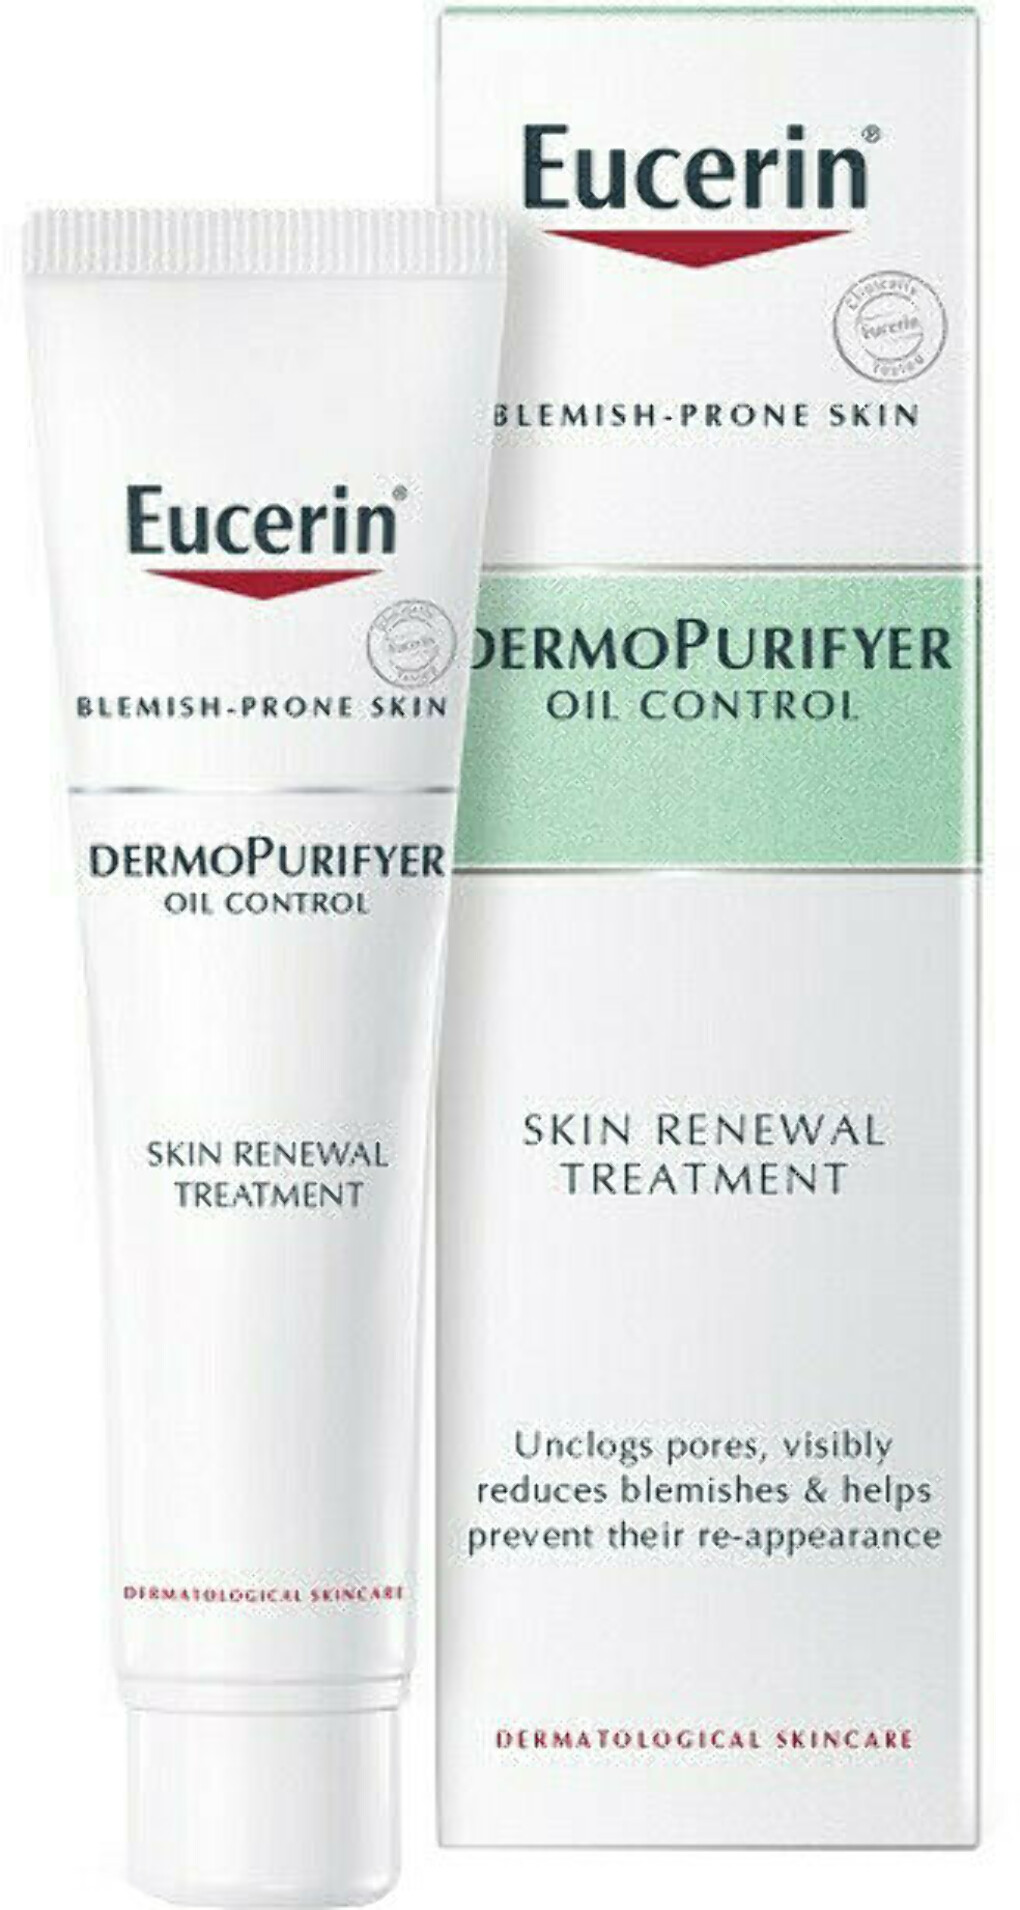 Eucerin dermopurifyer oil control skin renewal treatment